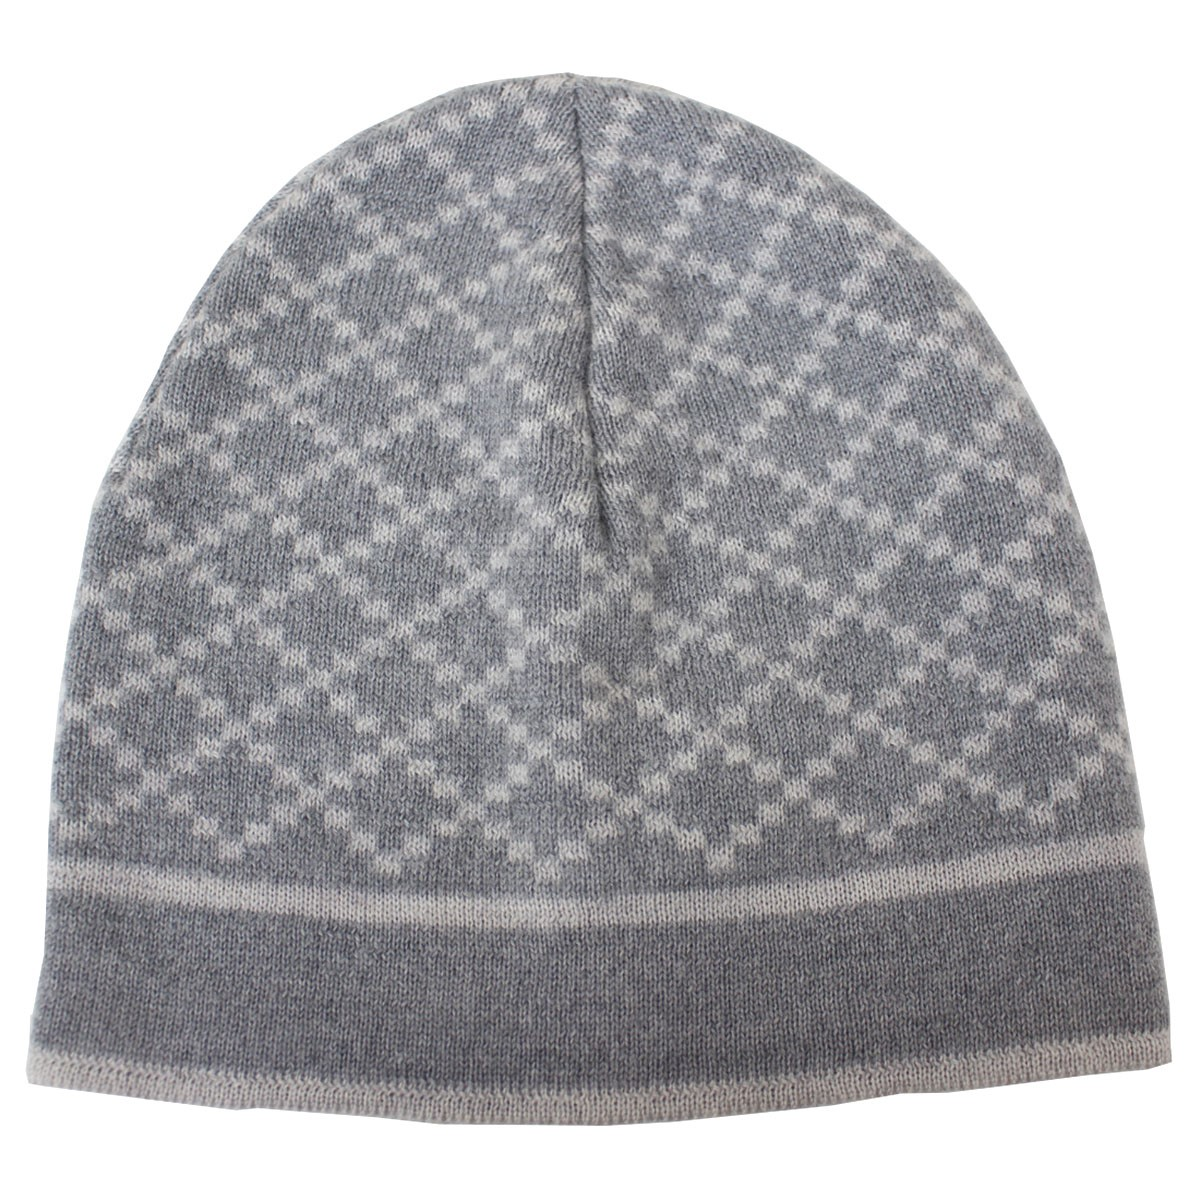 0a3d1df3 GUCCI diamond pattern knit cap beanie knit hat gray, off-white size: ...